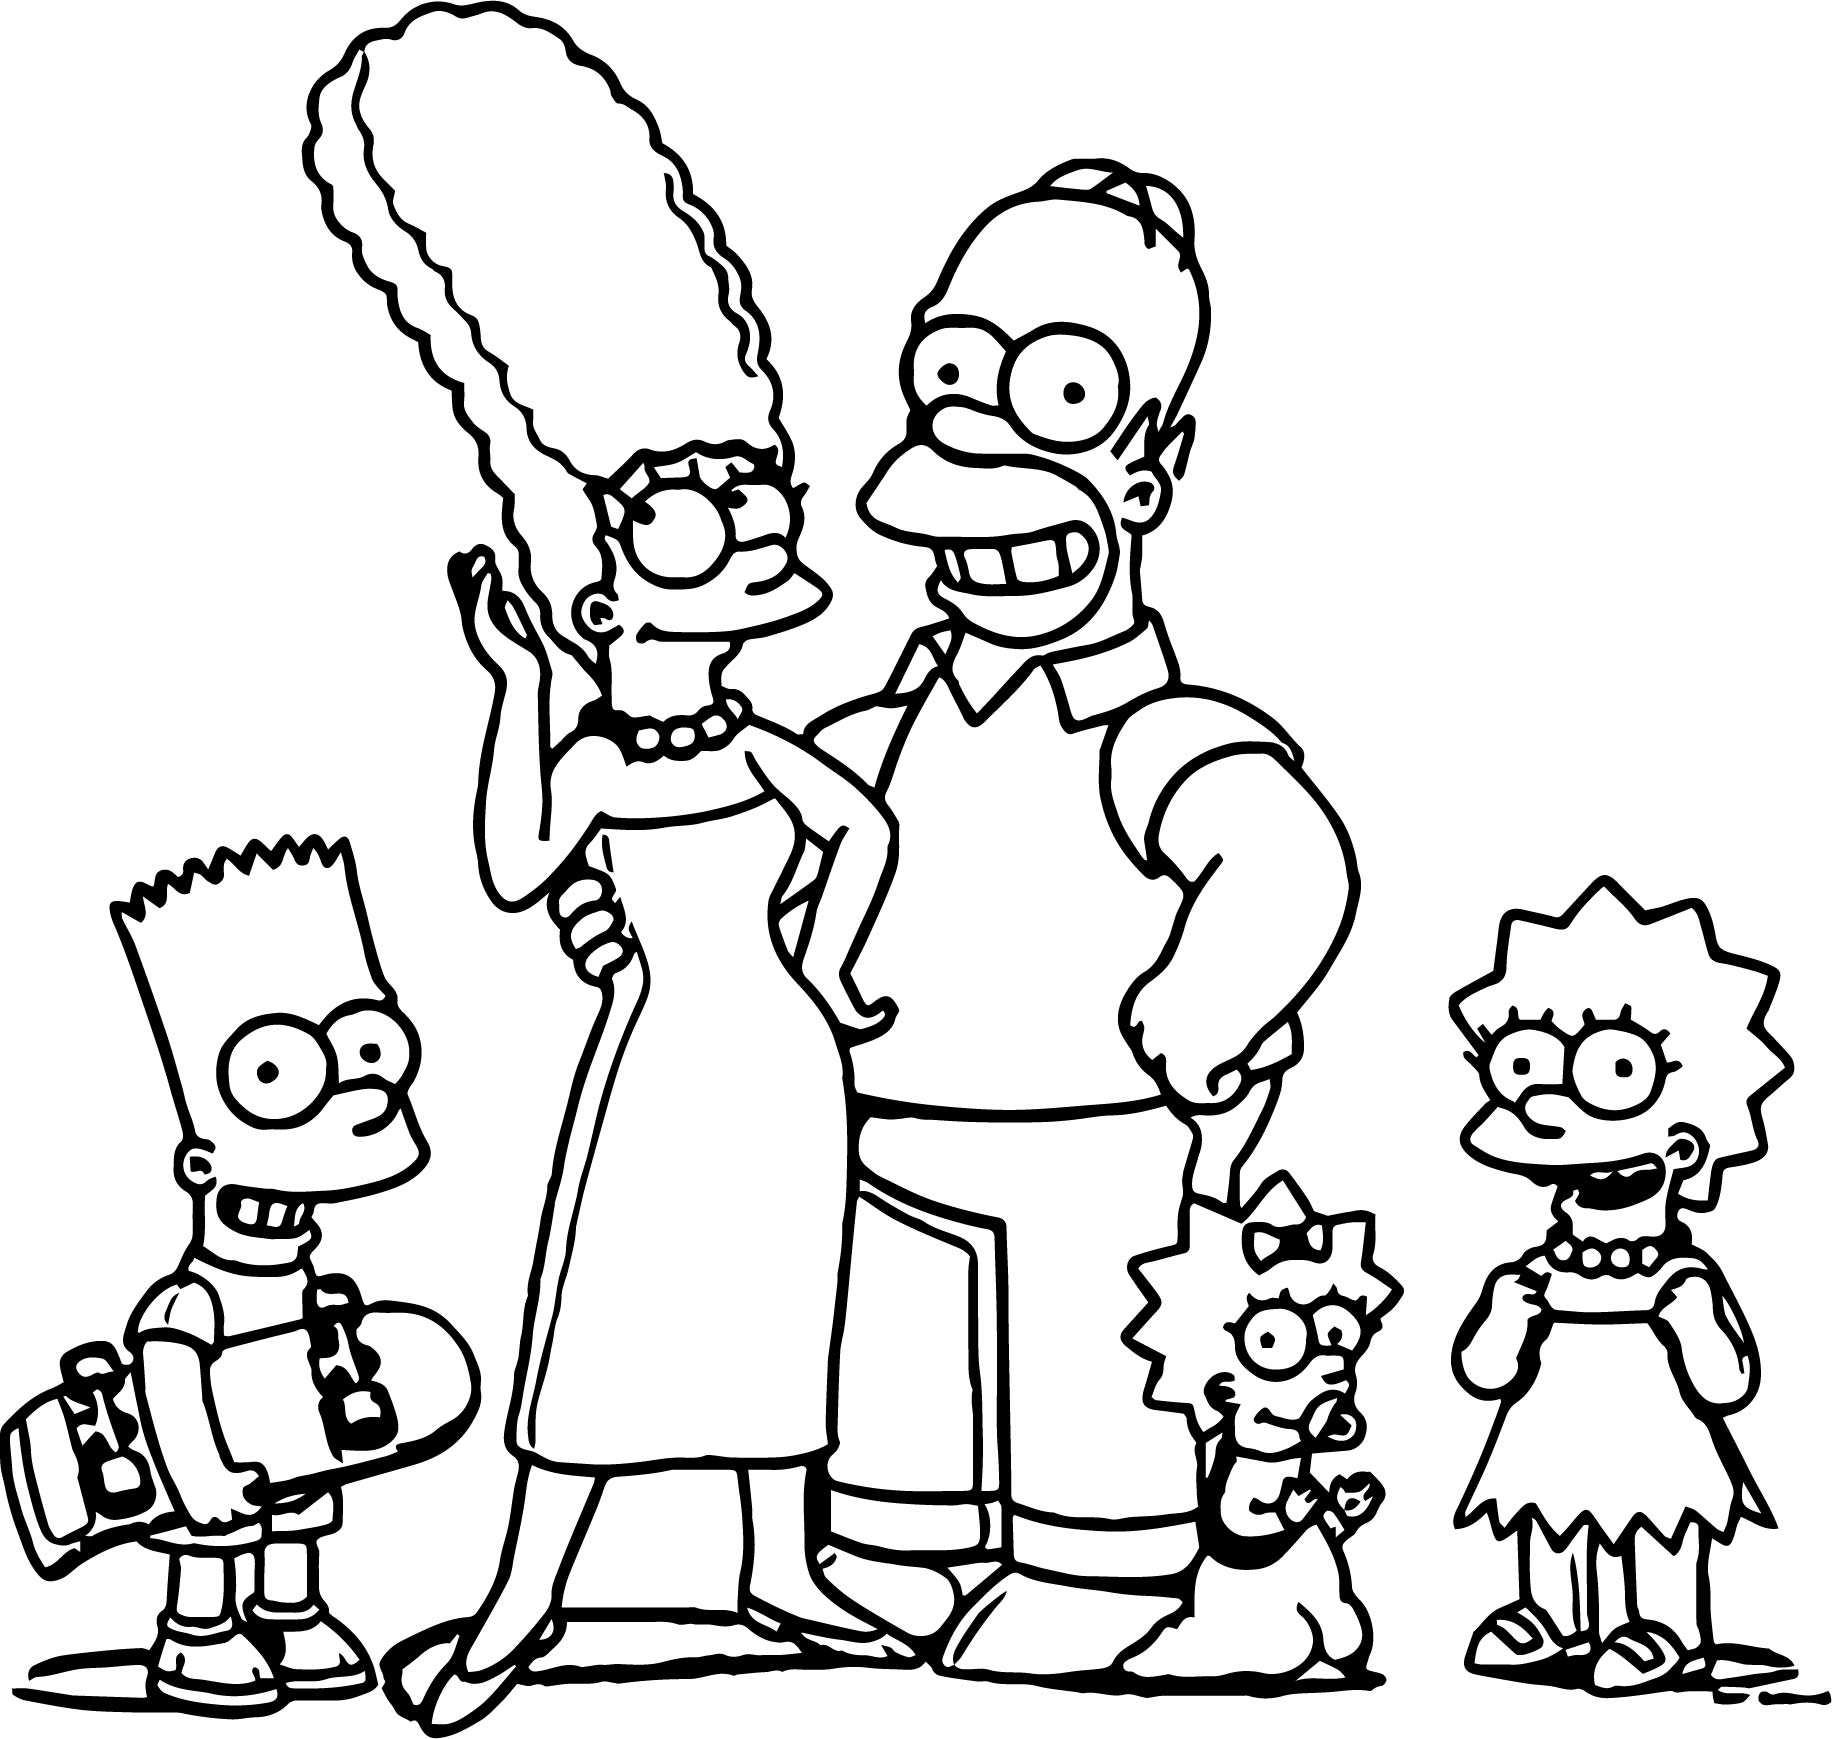 Simpsons Family Selfie Coloring Page